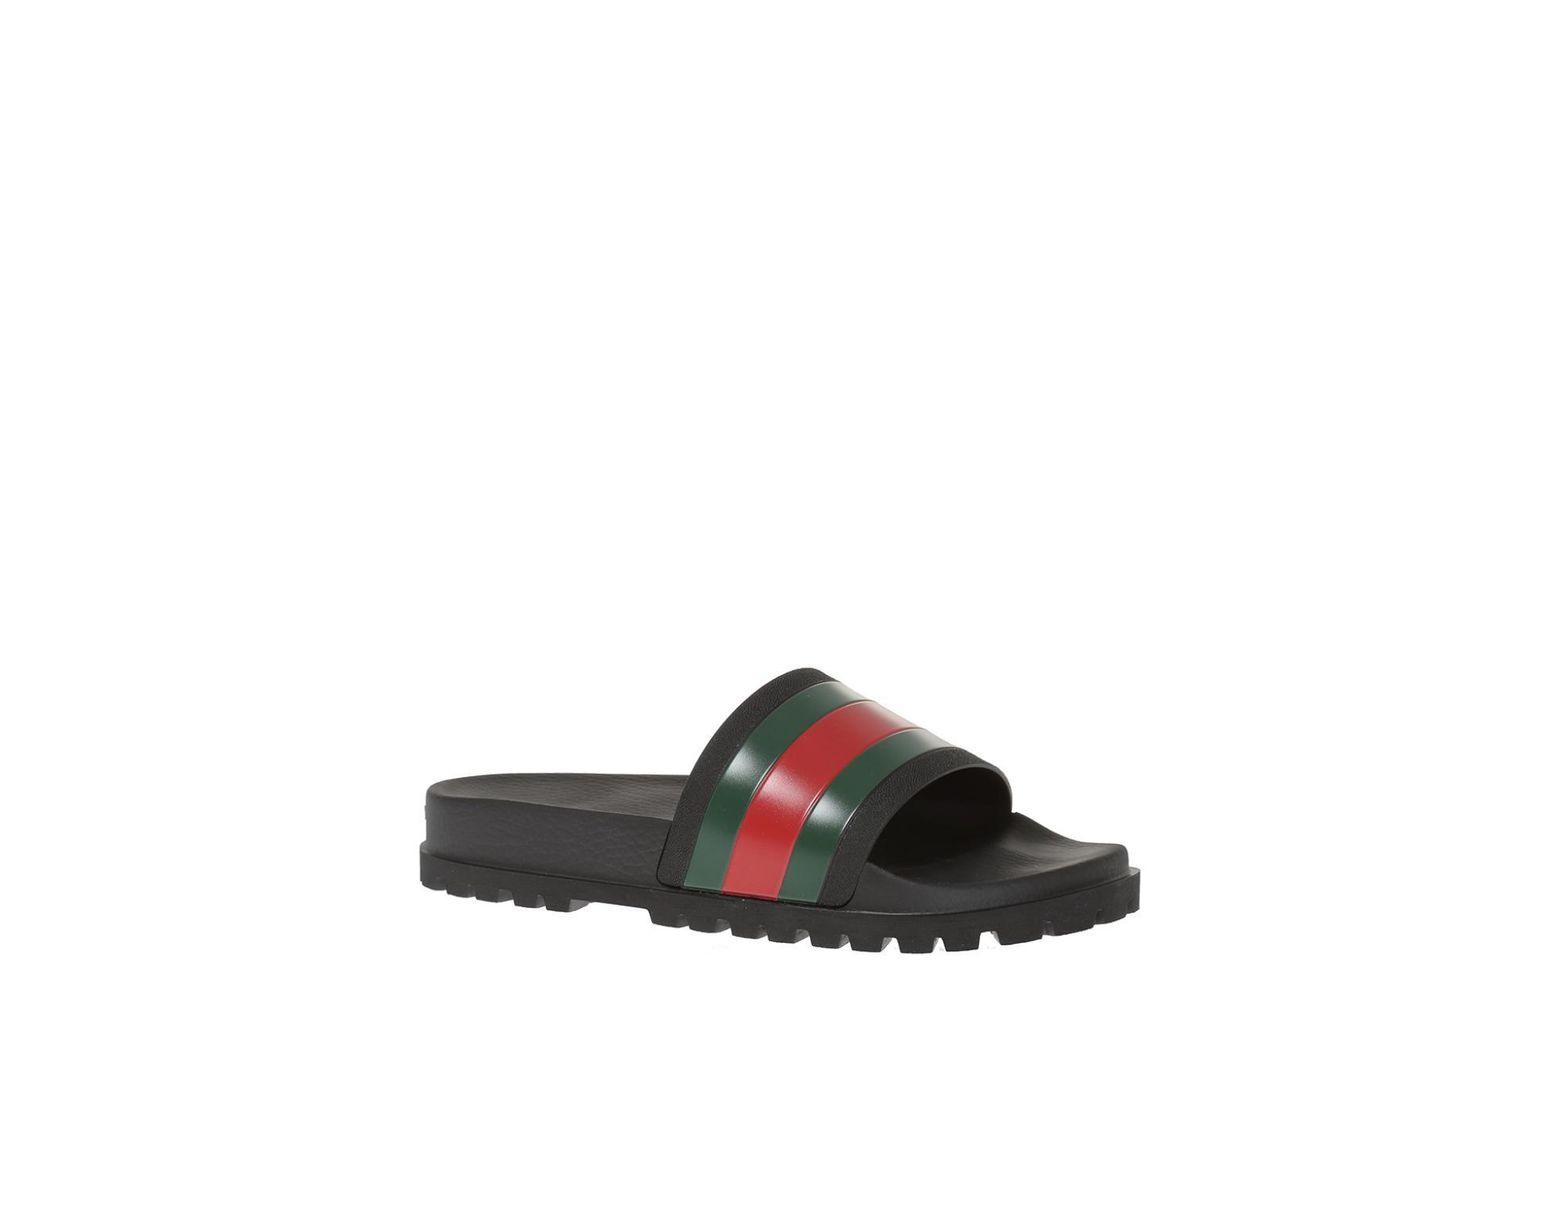 21b79111086 Lyst - Gucci Striped Web Rubber Slides in Black for Men - Save 30%